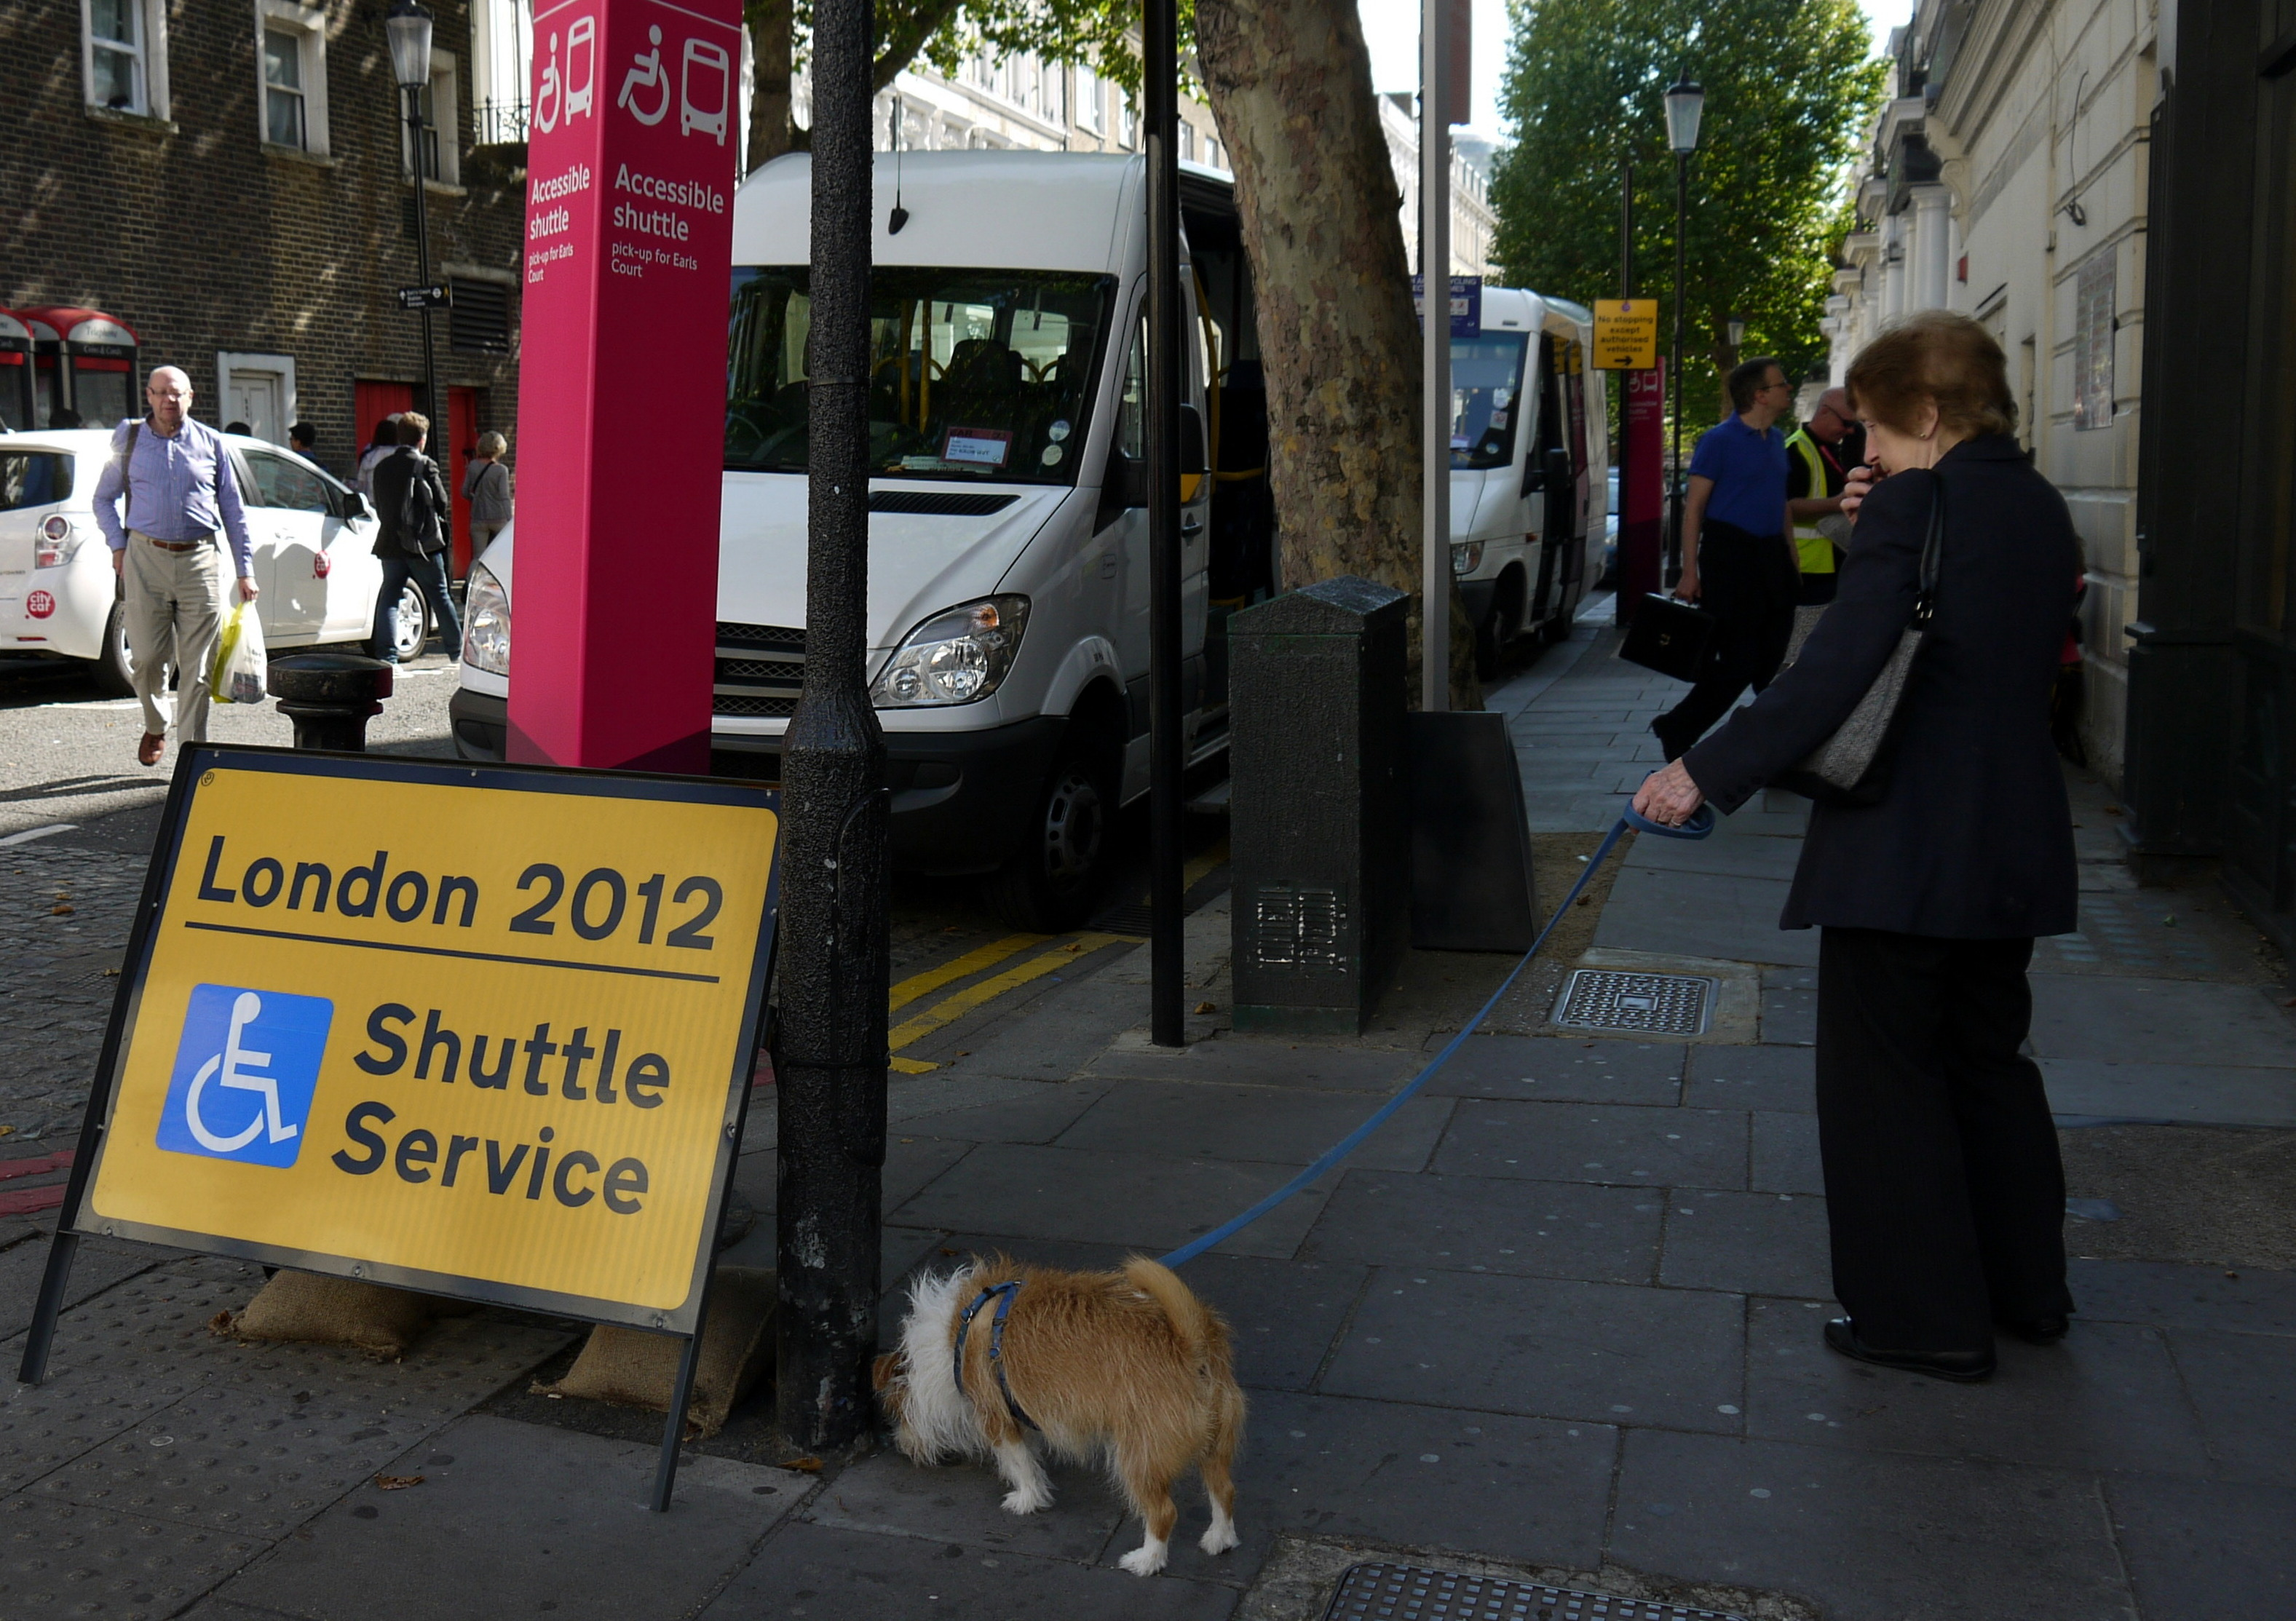 london 2012 shuttle service a Earl's Court (foto Martina Federico)